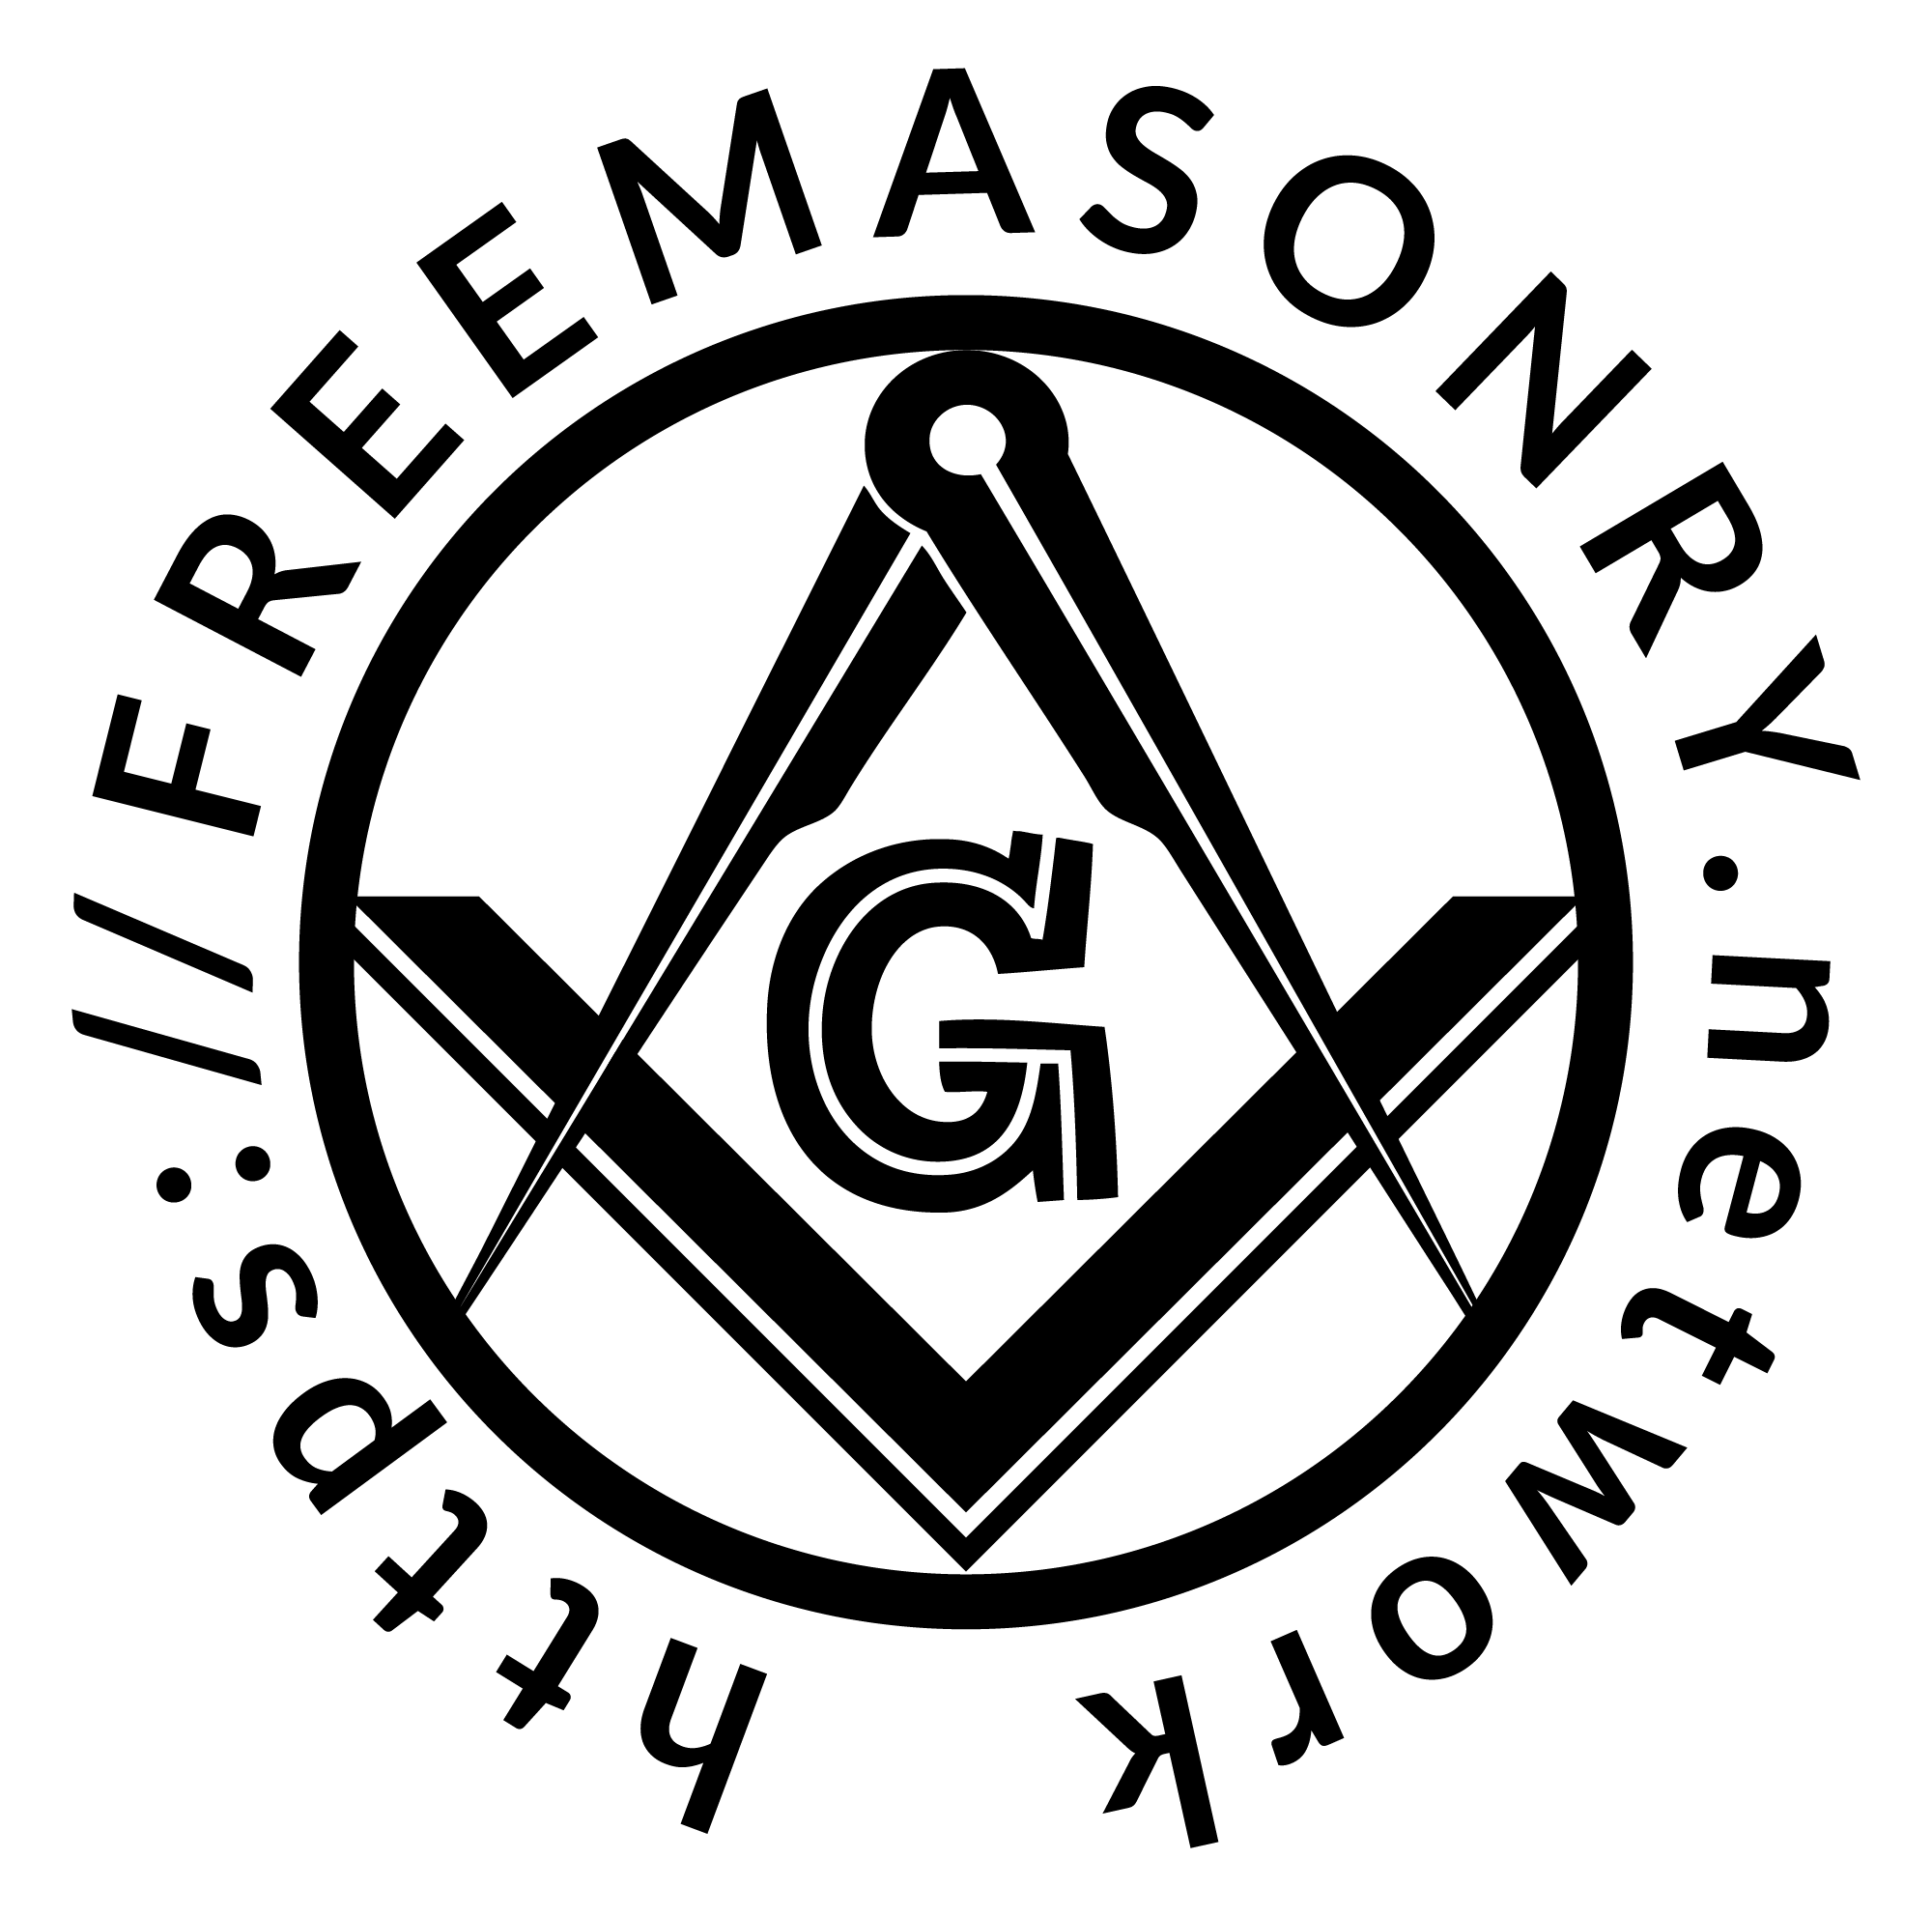 2018 Masonic Week: February 8 to 11